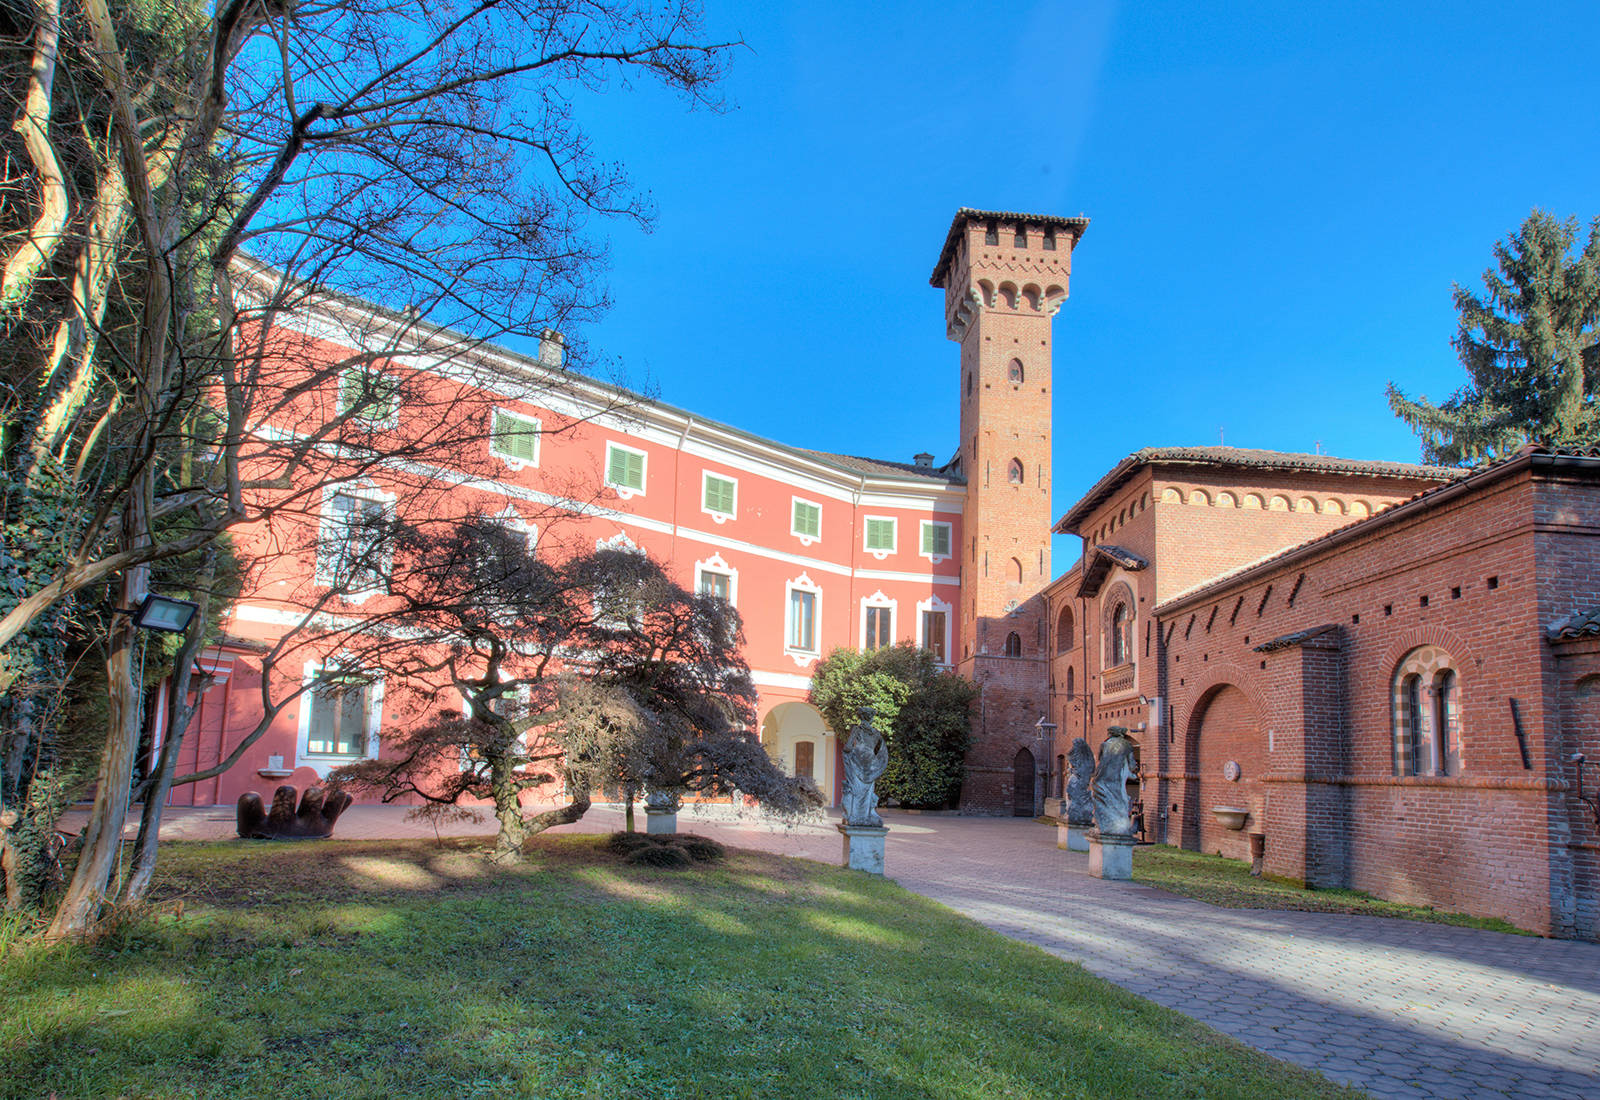 prestigious_real_estate_in_italy?id=2288